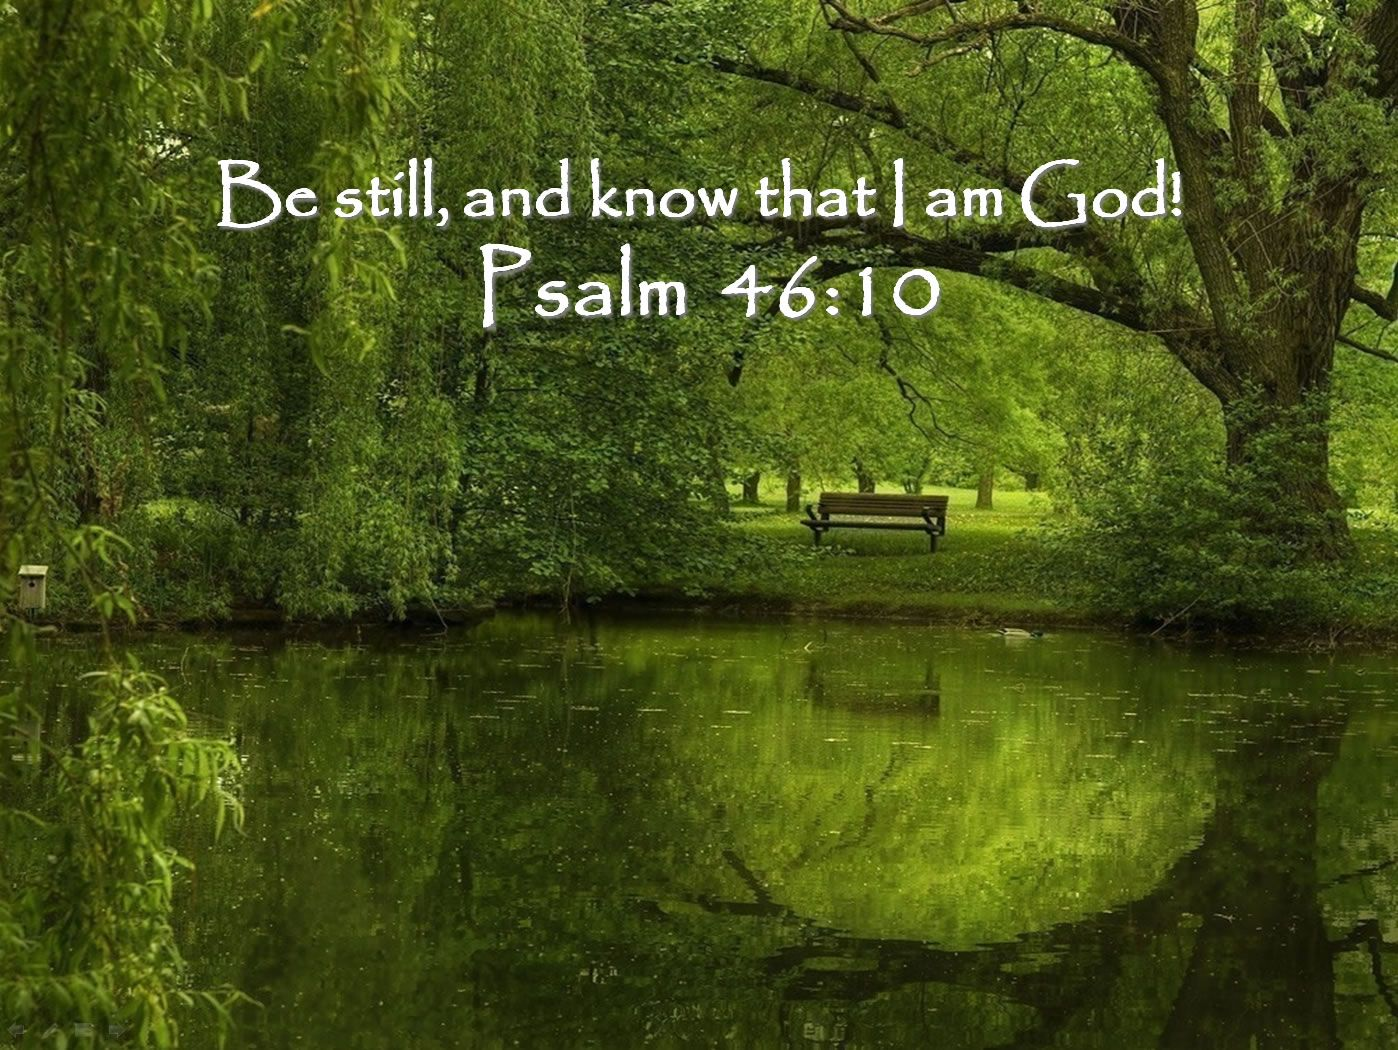 be still and know that i am god | Be still, and know that I am God!